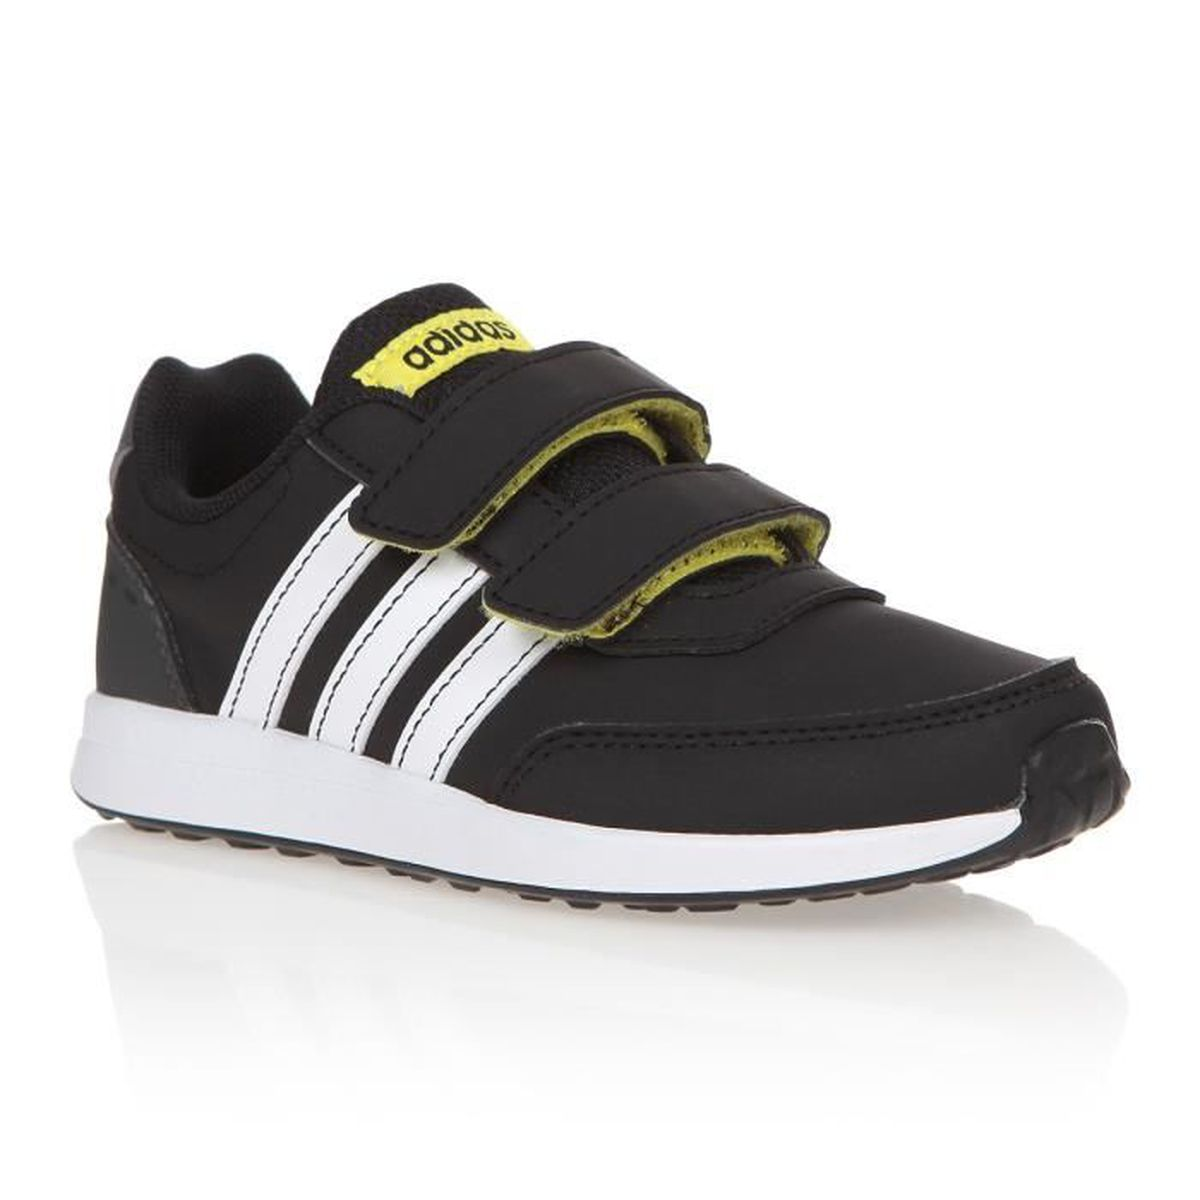 best sneakers fb53e 865a1 ADIDAS Baskets Vs Switch 2 Cmf C - Enfant garçon - Noir et blanc